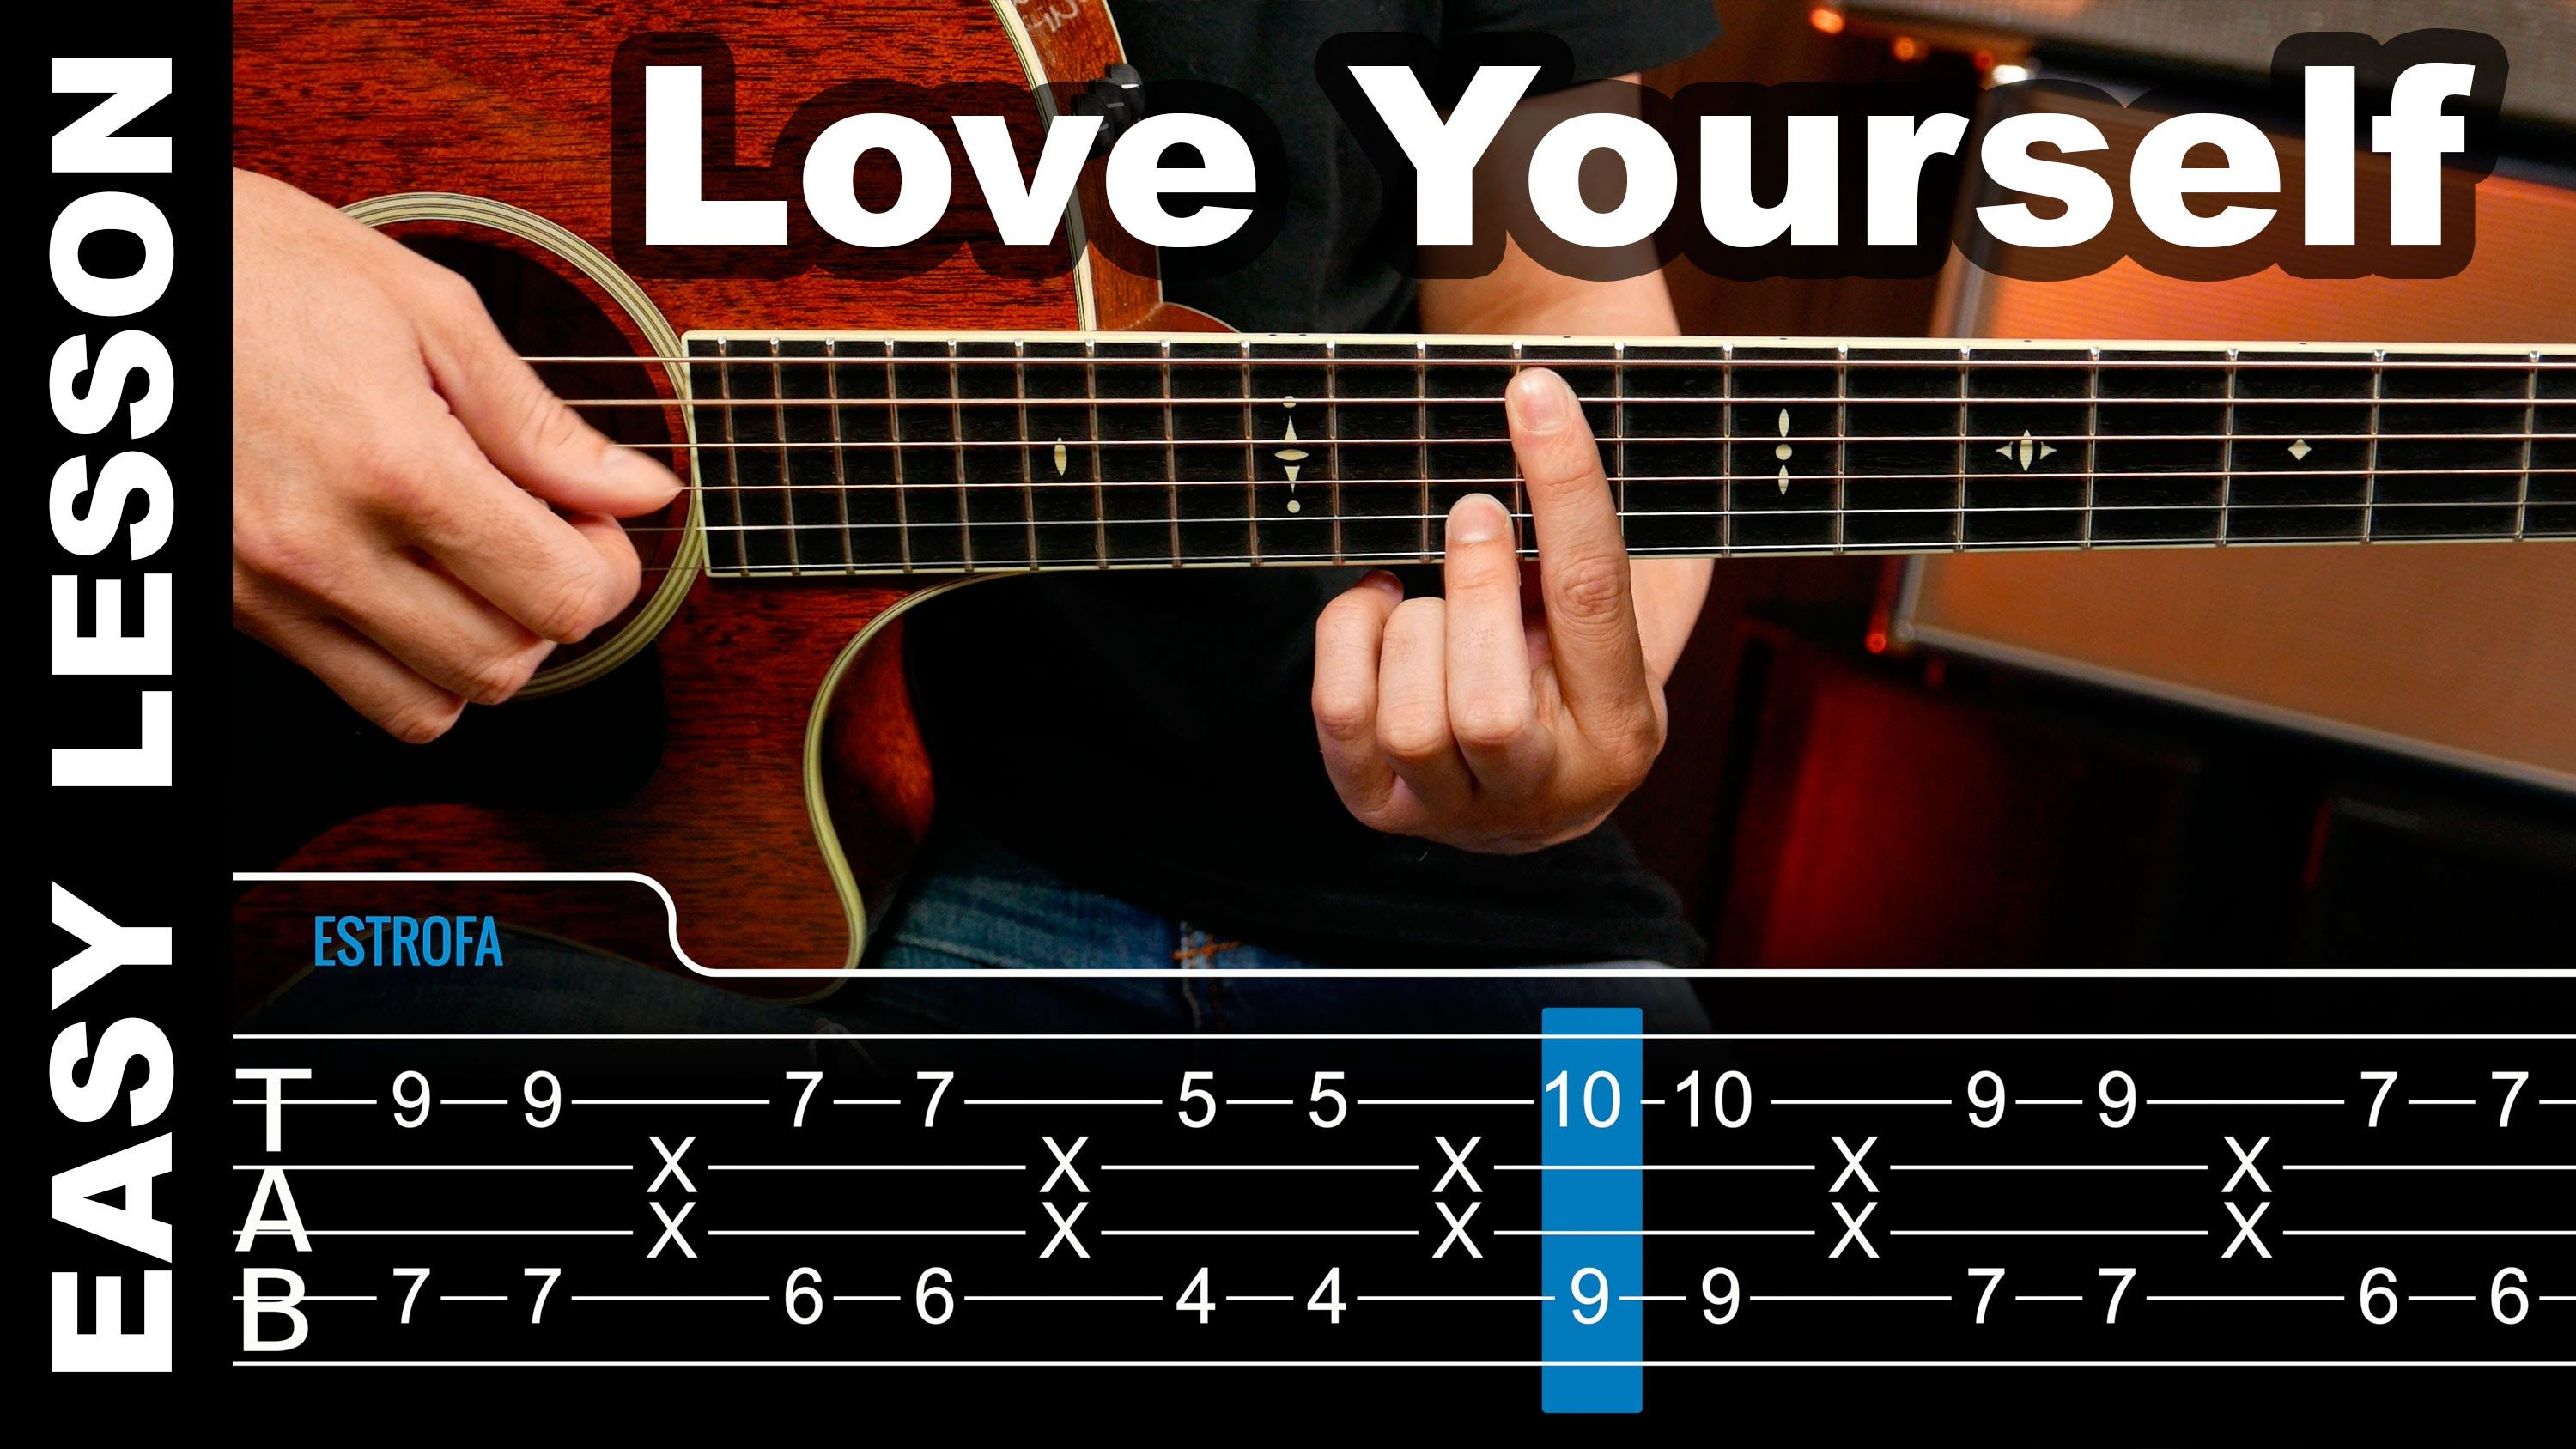 How To Play Love Yourself Justin Bieber Guitar Lesson Tabs